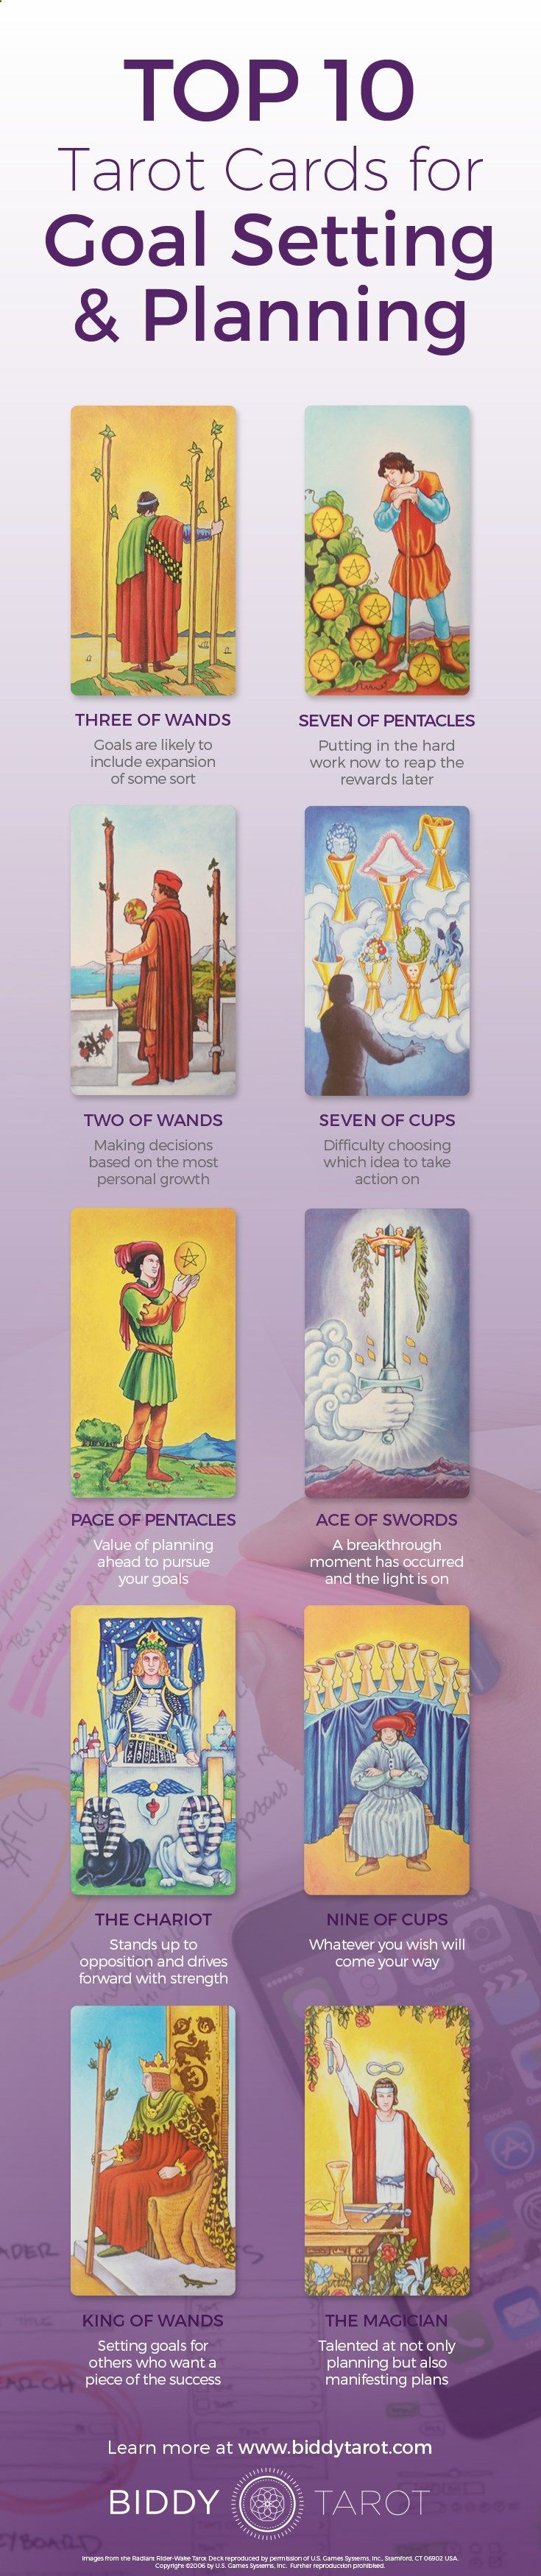 You know where you #want to go but you're not quite sure how to get there. If these cards appear in a reading, it's a good indication that it's time to #plan and set some #goals. Download your free copy of my Top 10 Tarot Cards for love, finances, career, life purpose and so much more at www.biddytarot.co... It's my gift to you!